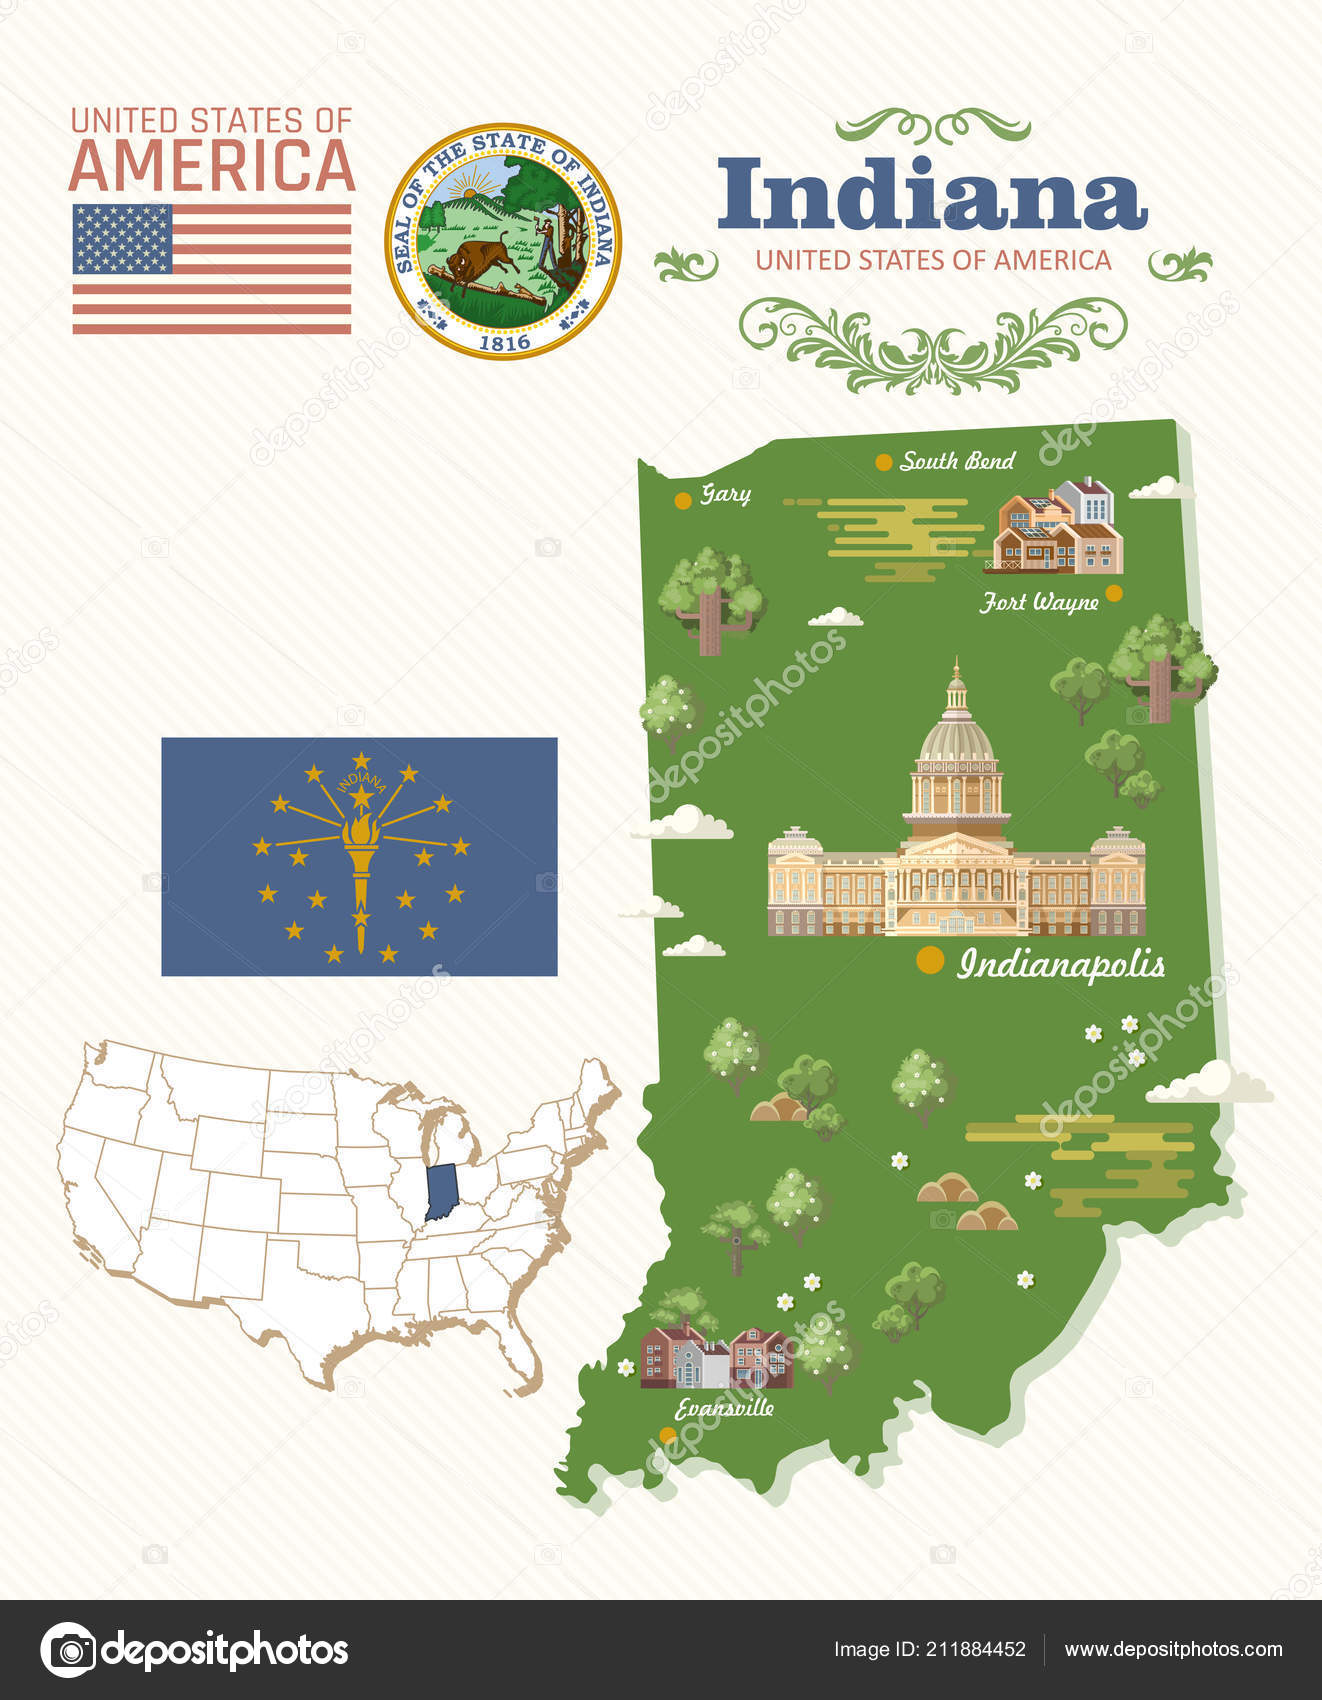 Indiana State Travel Map on florida travel map, iowa travel map, tennessee travel map, cincinnati travel map, nebraska travel map, oklahoma travel map, ohio travel map, nevada travel map, indiana map with capital, virginia travel map, colorado travel map, idaho travel map, indiana state weather, kentucky travel map, utah travel map, indiana state information, mississippi travel map, wisconsin travel map, indiana state history, wyoming travel map,